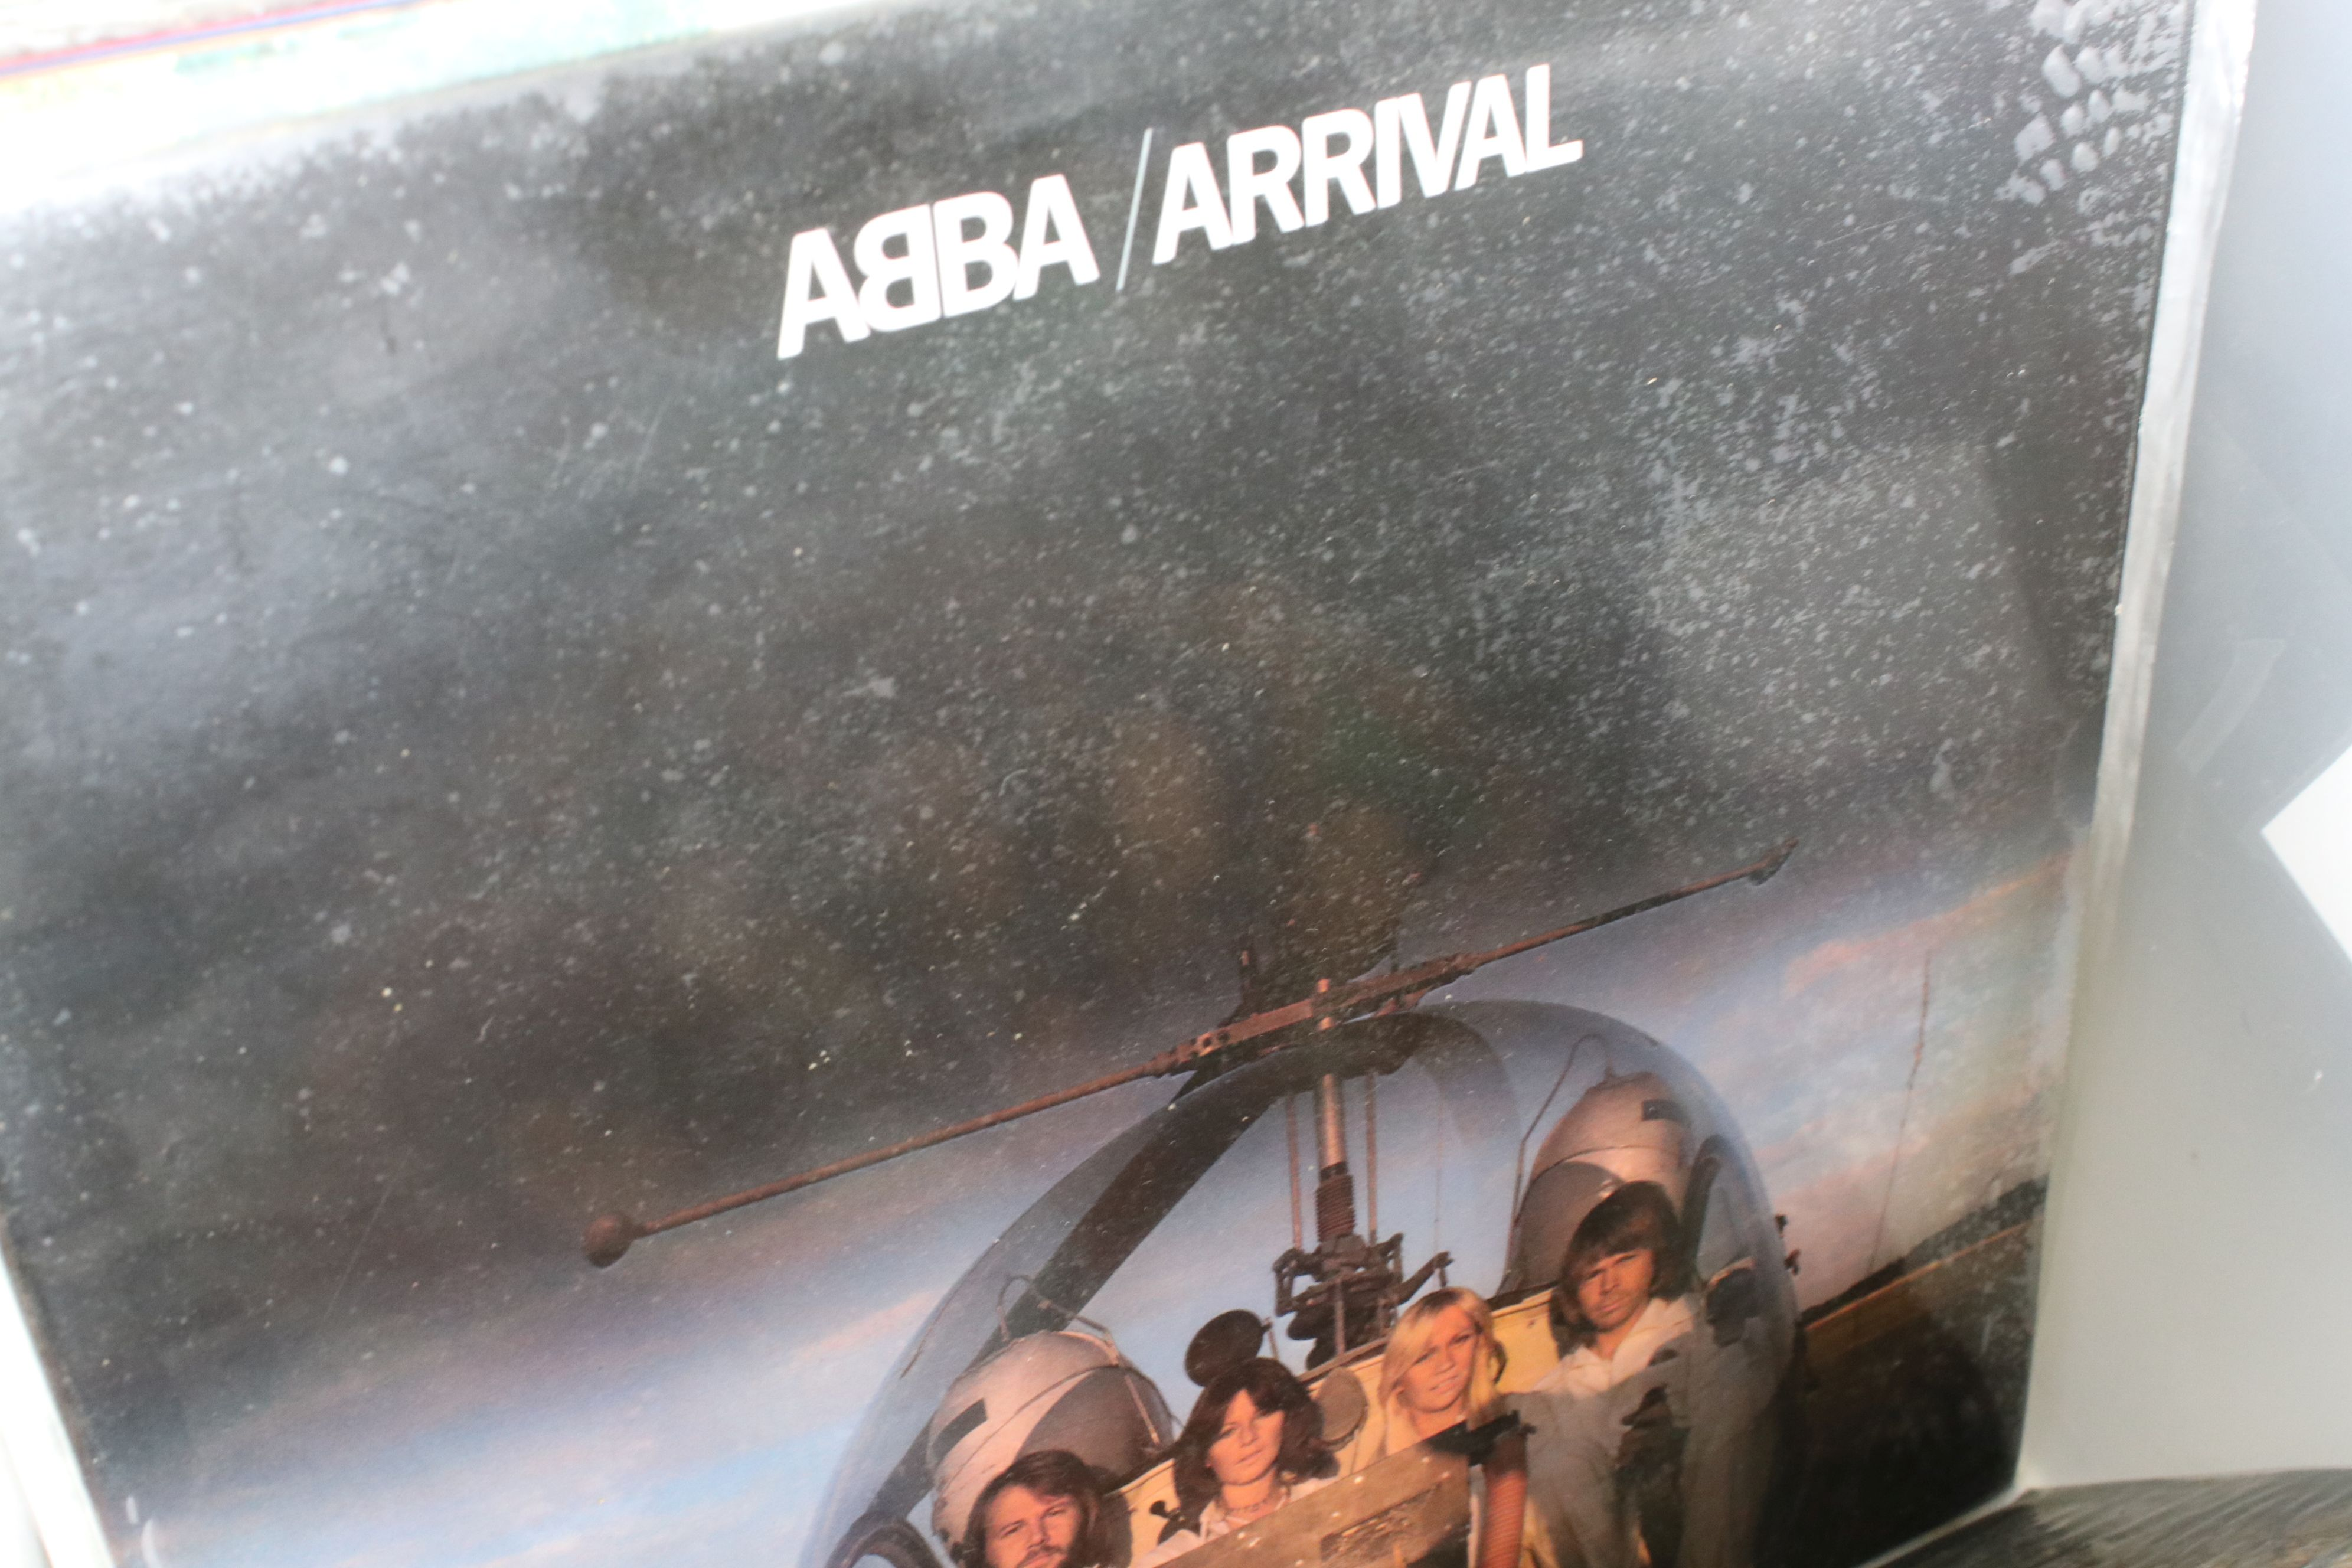 """Vinyl - Around 60 Pop and Rock LPs to include some 7"""" singles, artists feature The Eagles, ELP, Mike - Image 10 of 12"""